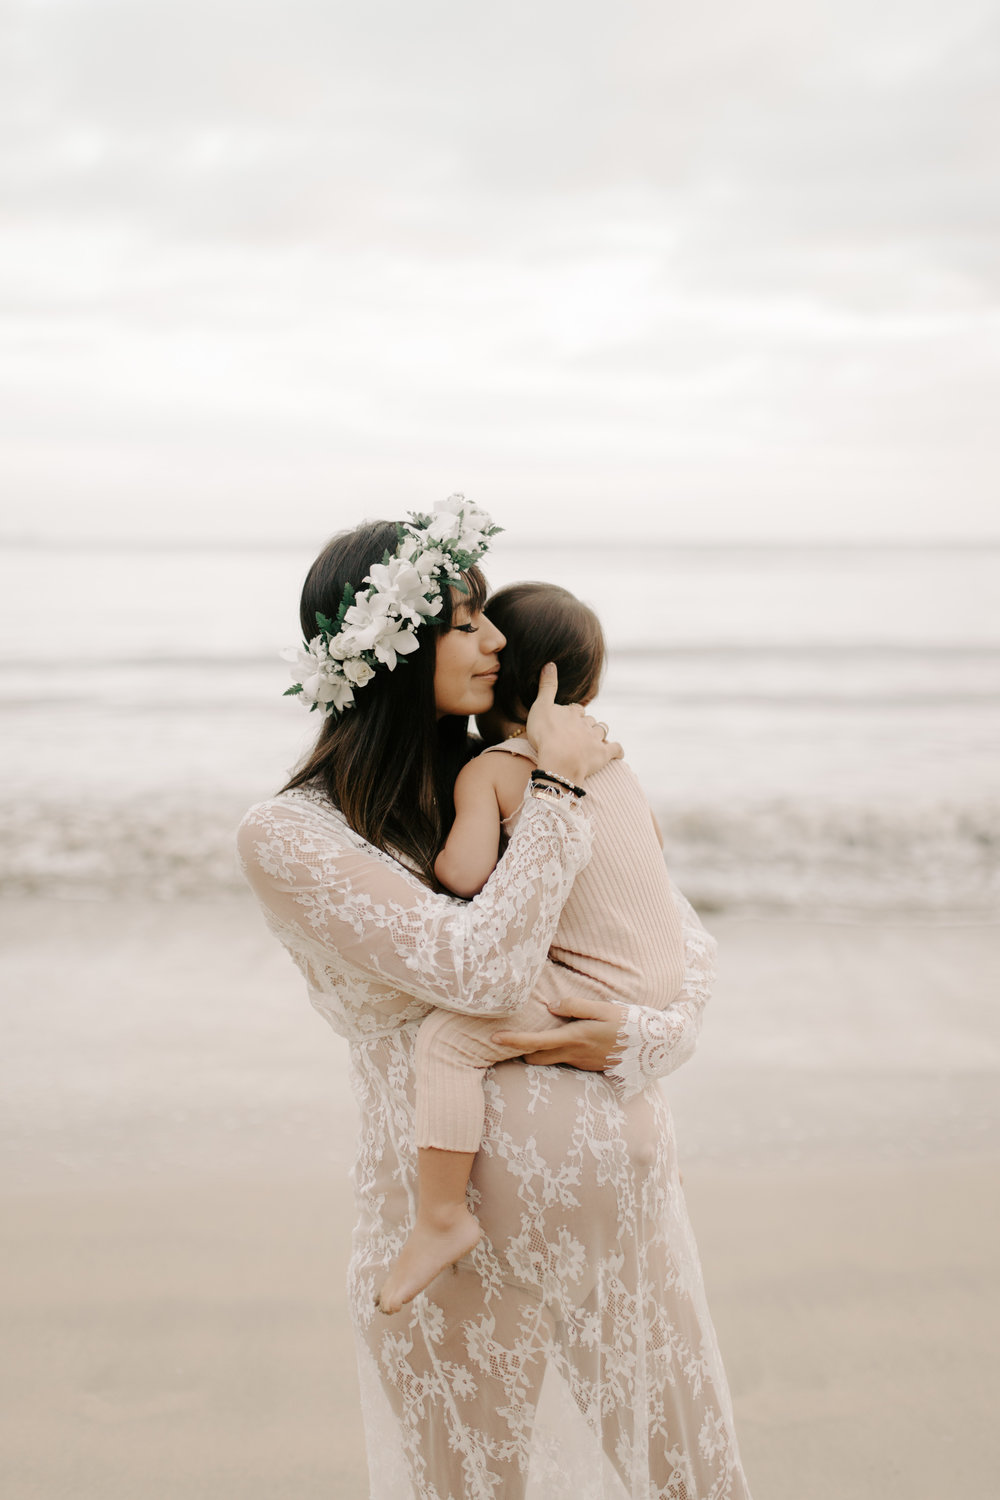 Beautiful moment between a mother and her daughter at Kahana Bay by Oahu Maternity Photographer Desiree Leilani